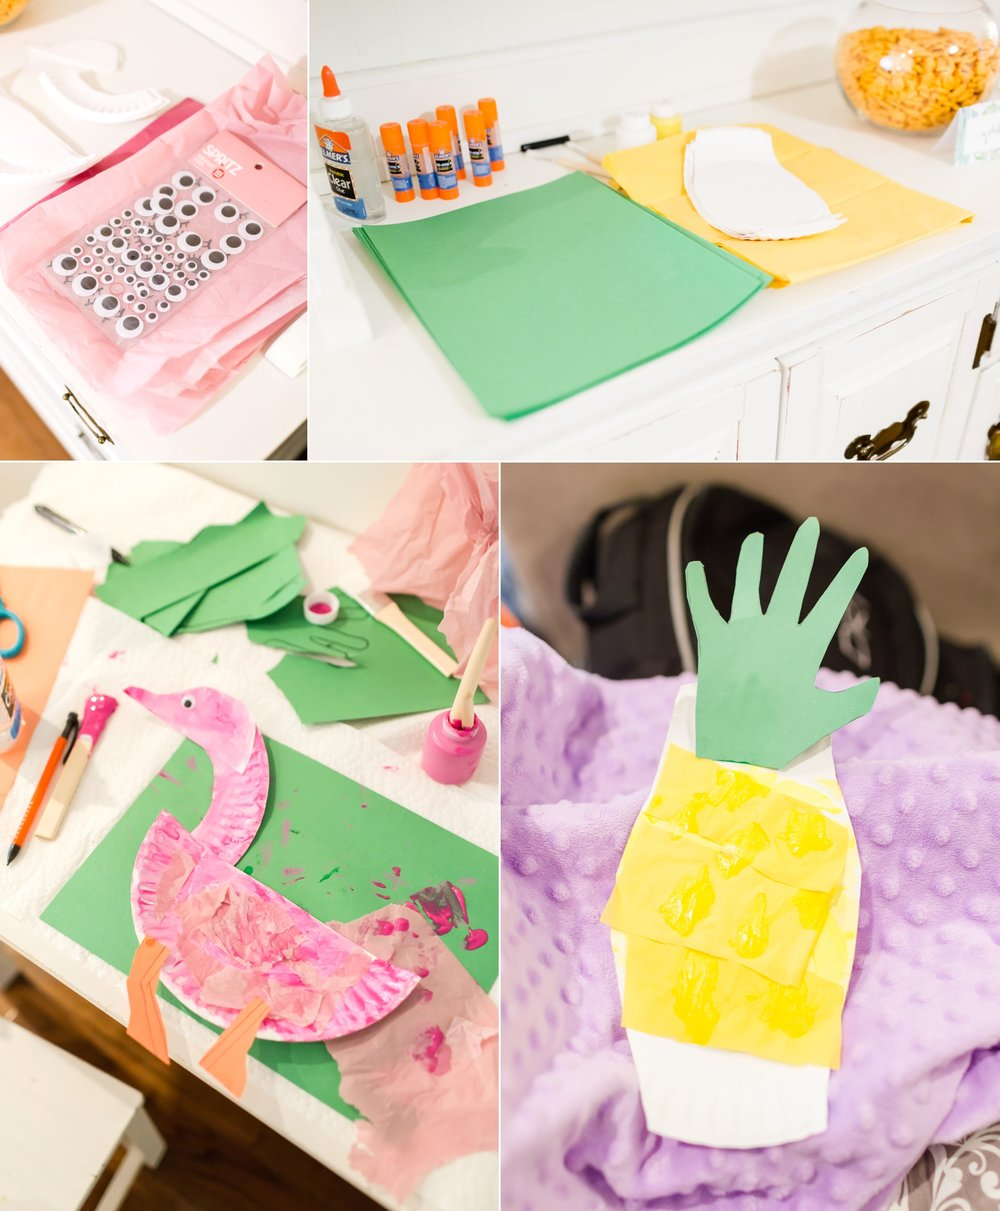 A fun little craft for the kids! They made cute paper plate flamingos and pineapples.